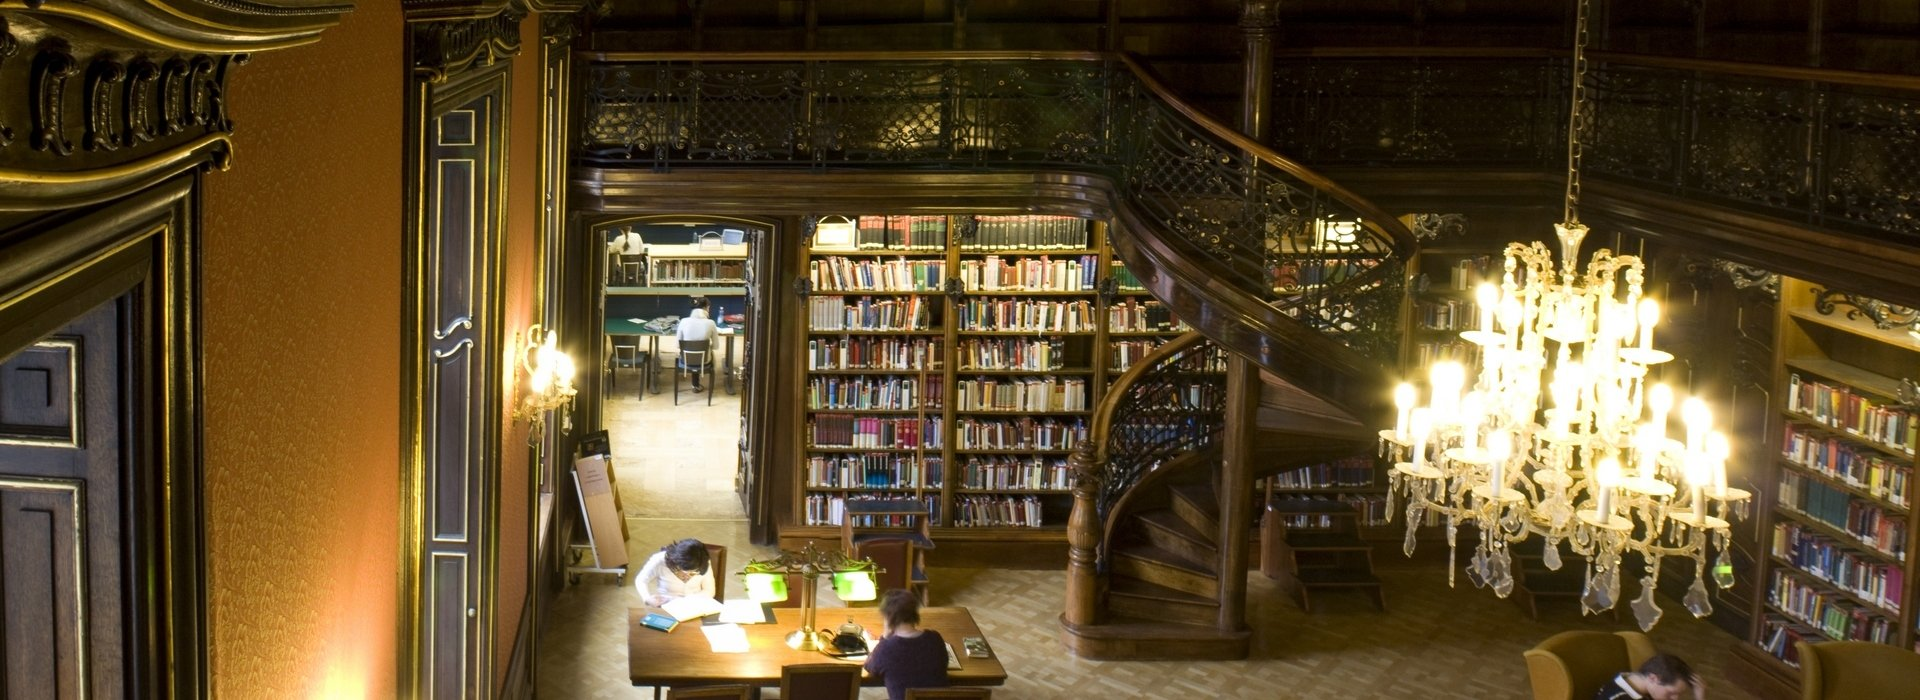 Budapest Libraries – Budapest Library Guide